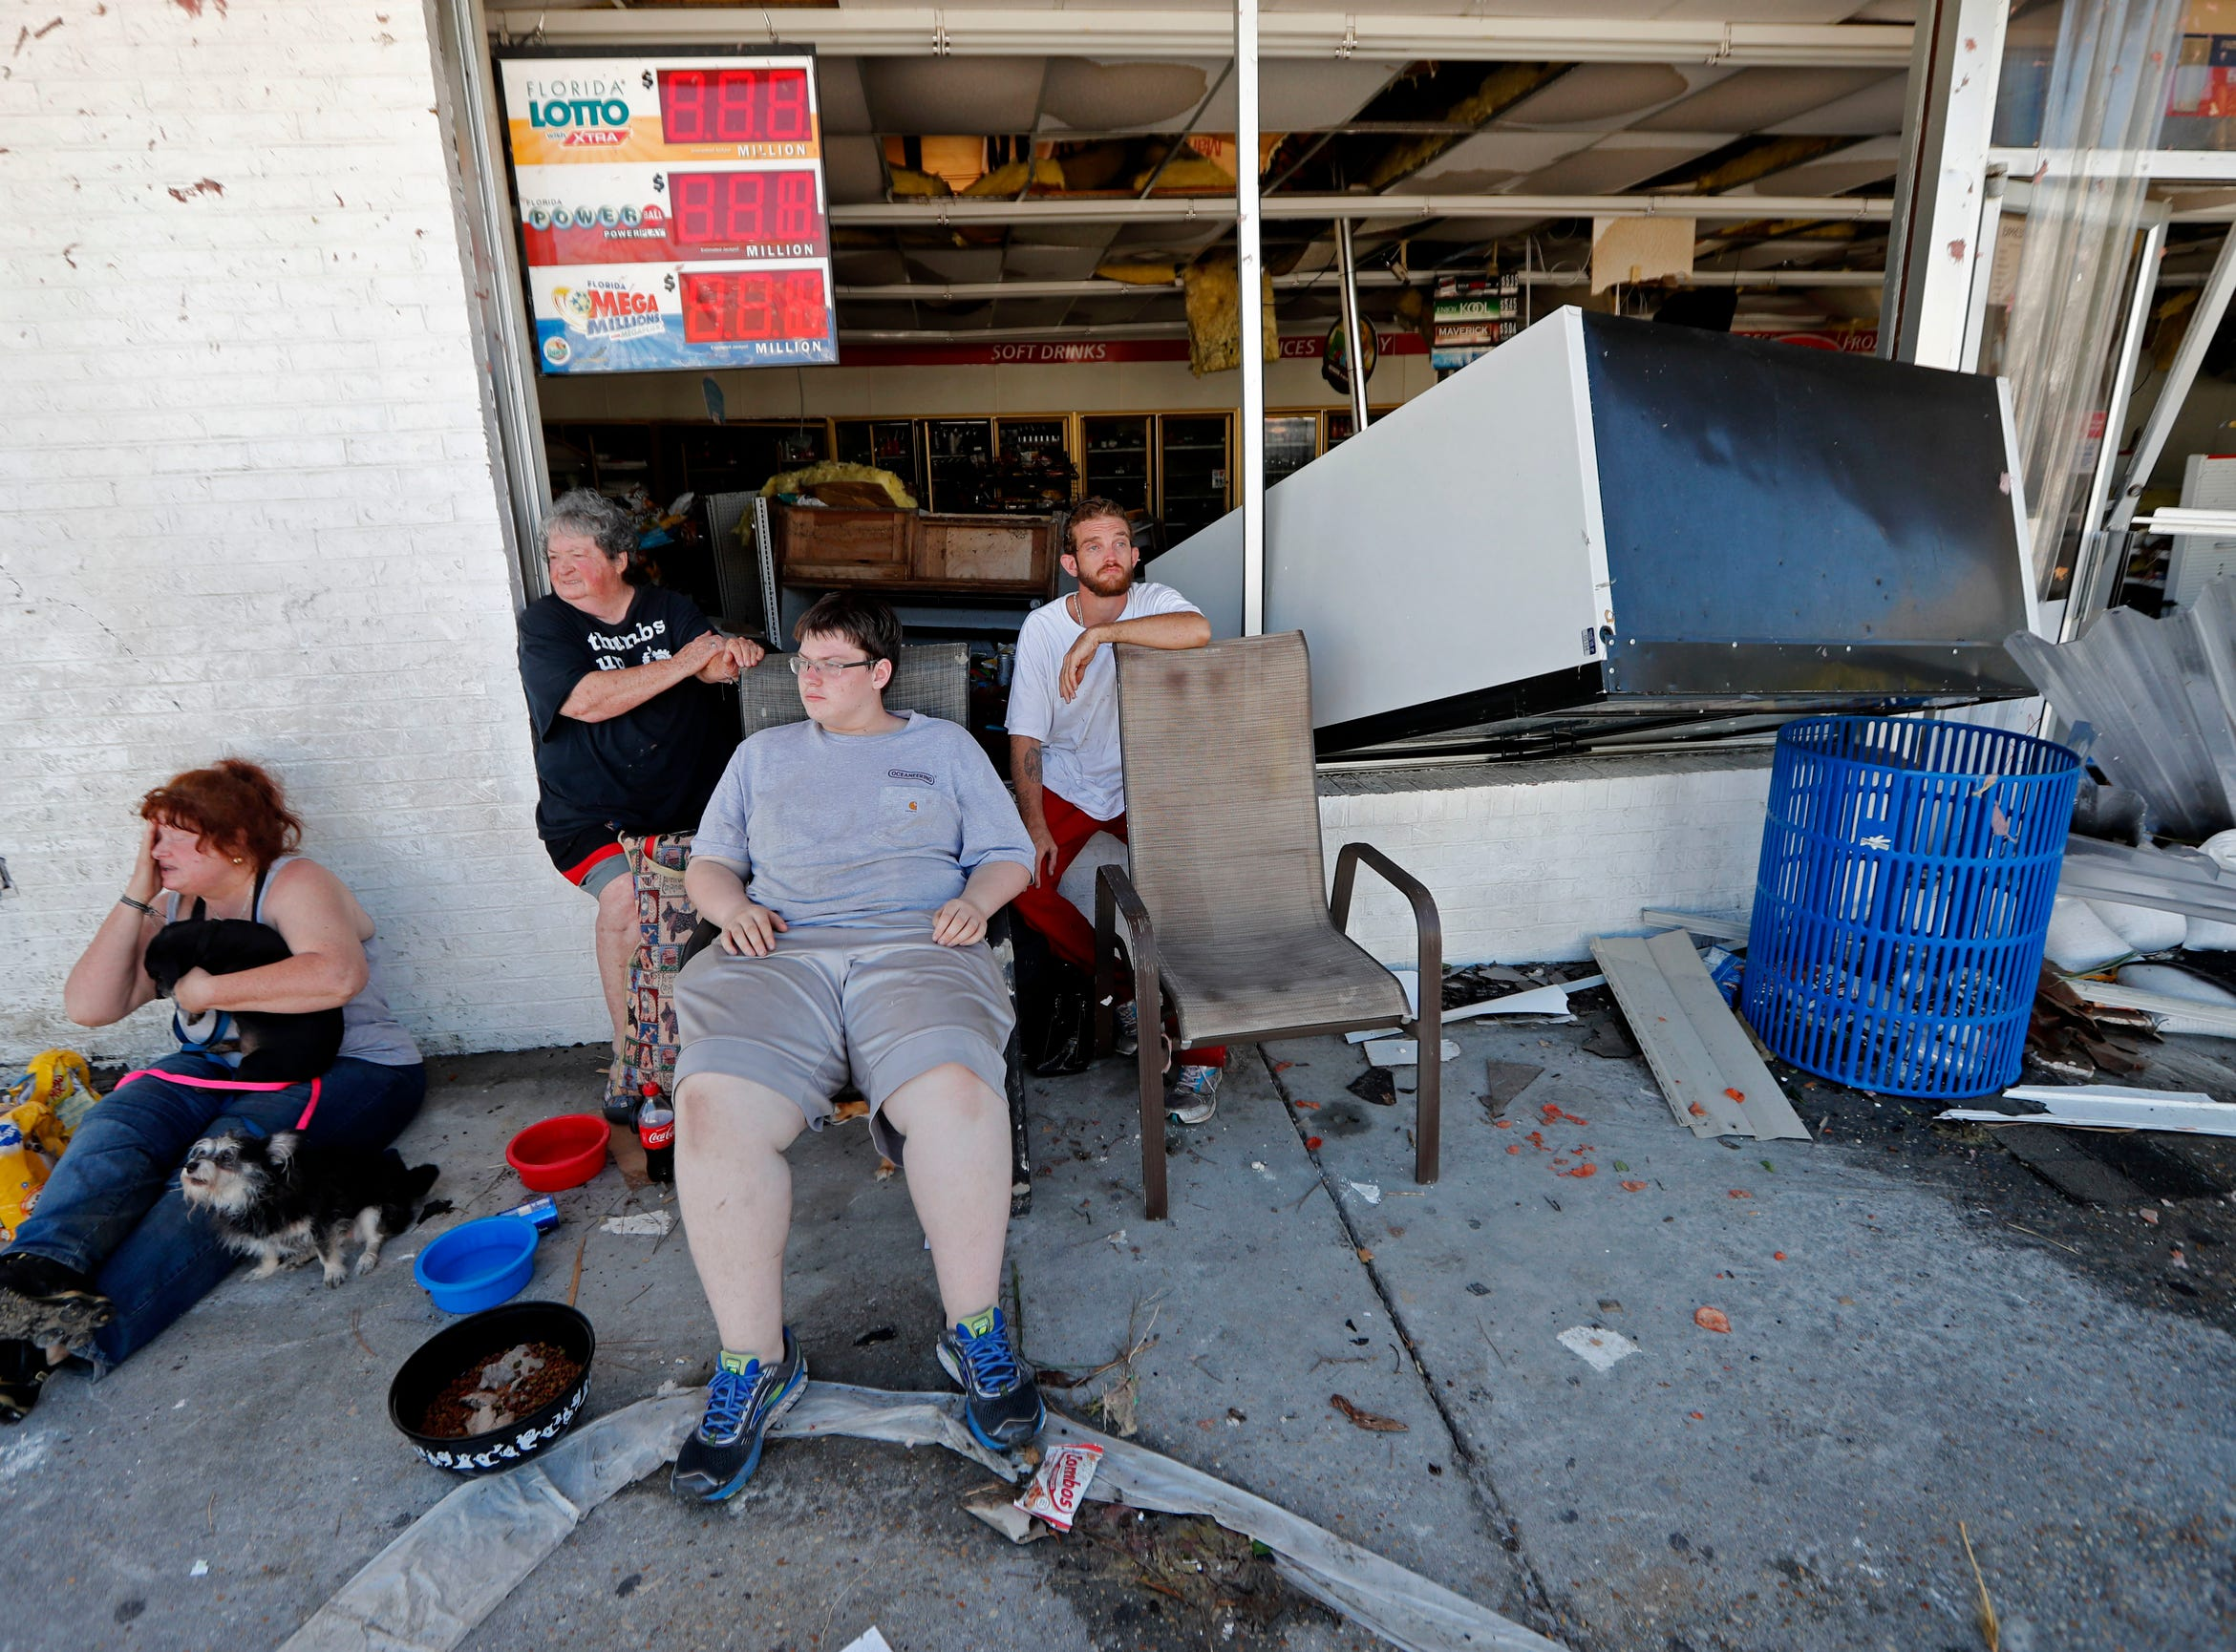 Dawn Vickers, left, her mother Patsy Vickers, son Ryder Vickers, and friend Robert Brock, right, who rode out Hurricane Michael in their now-destroyed home, sit in front of a damaged convenience store with nowhere to go, in Michael's aftermath, in Mexico Beach, Fla., on Oct. 11, 2018. Their house floated away from its foundation in the storm and they escaped the water by wading through a window.